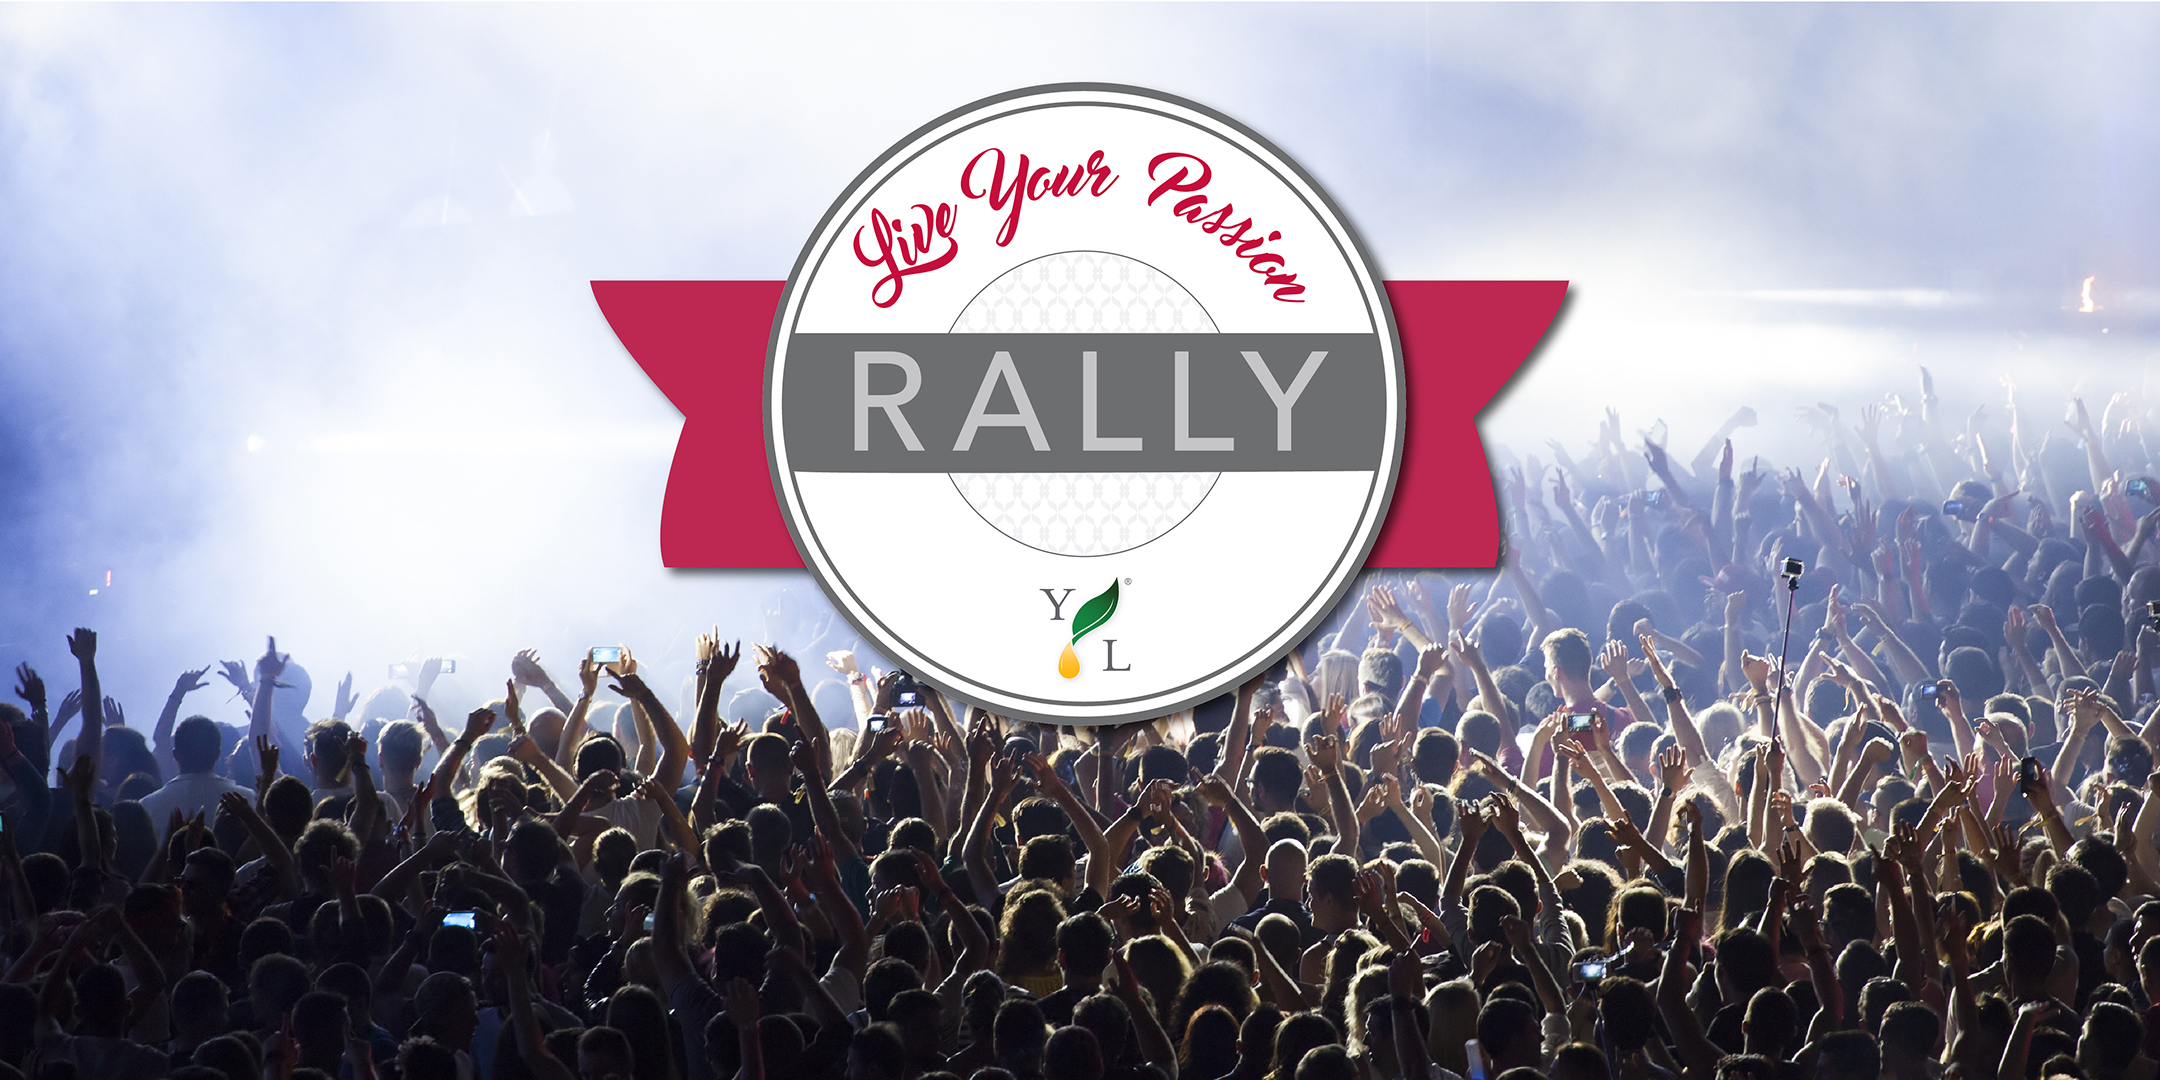 Young Living Rally!